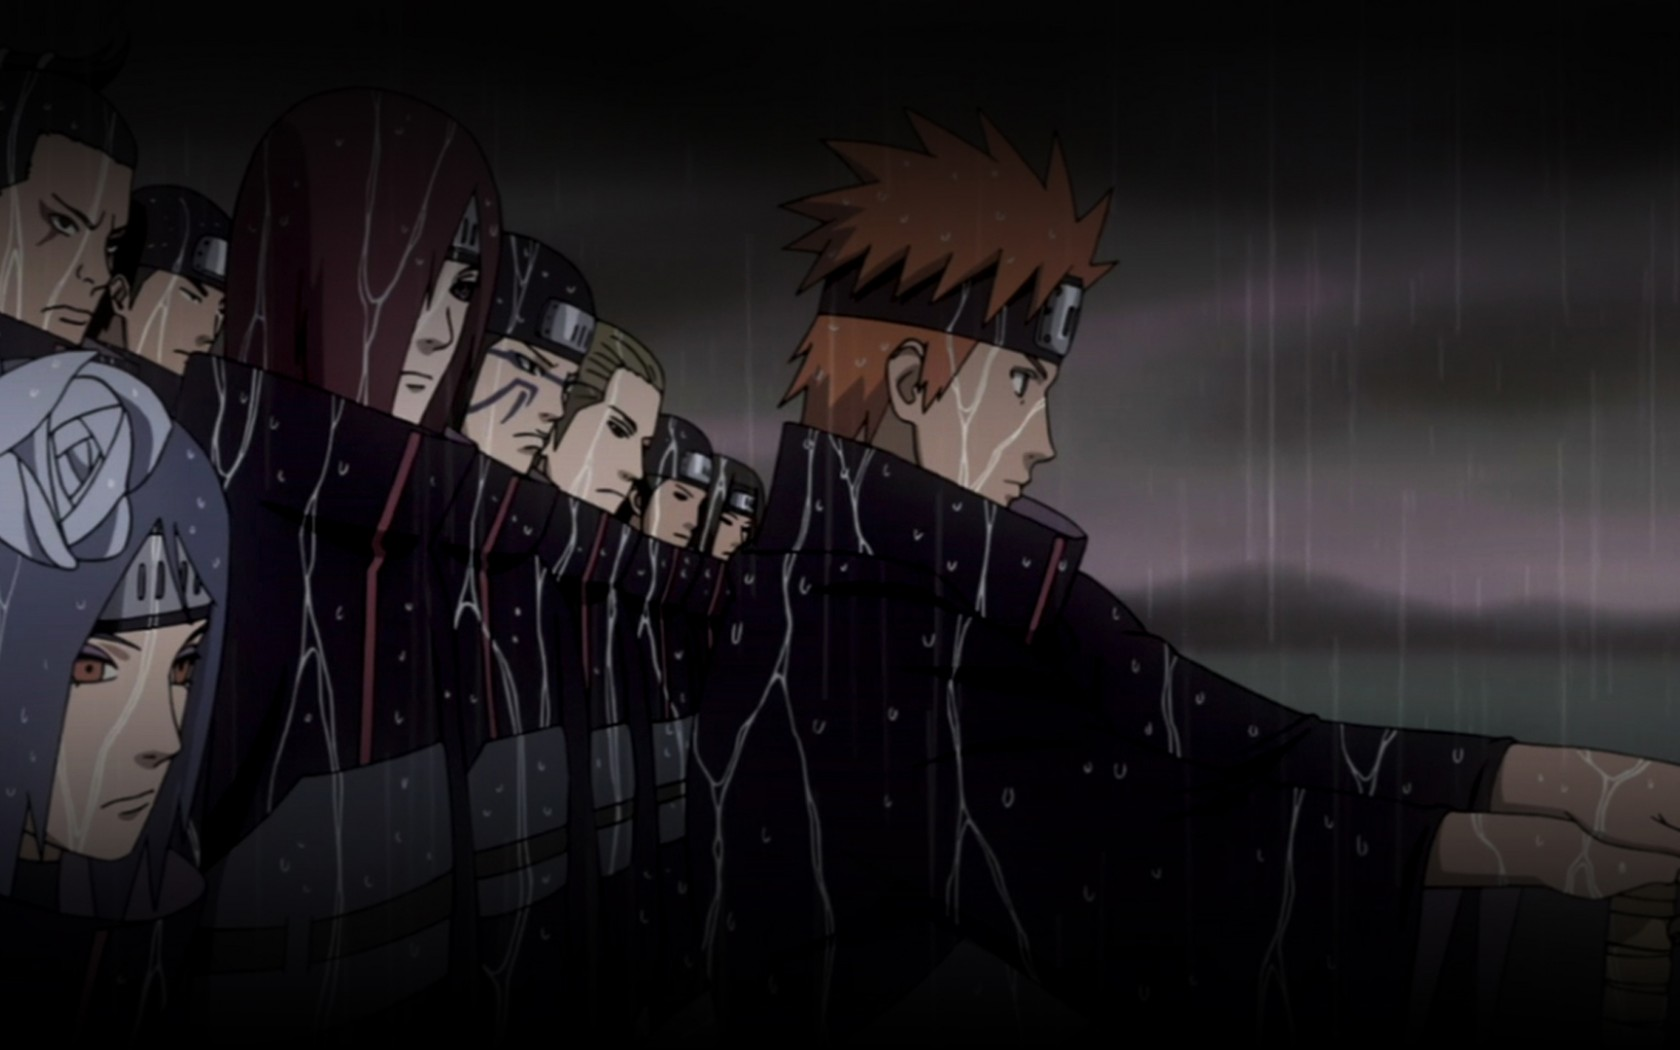 Pain - Naruto Wallpaper and Background Image | 1680x1050 ...